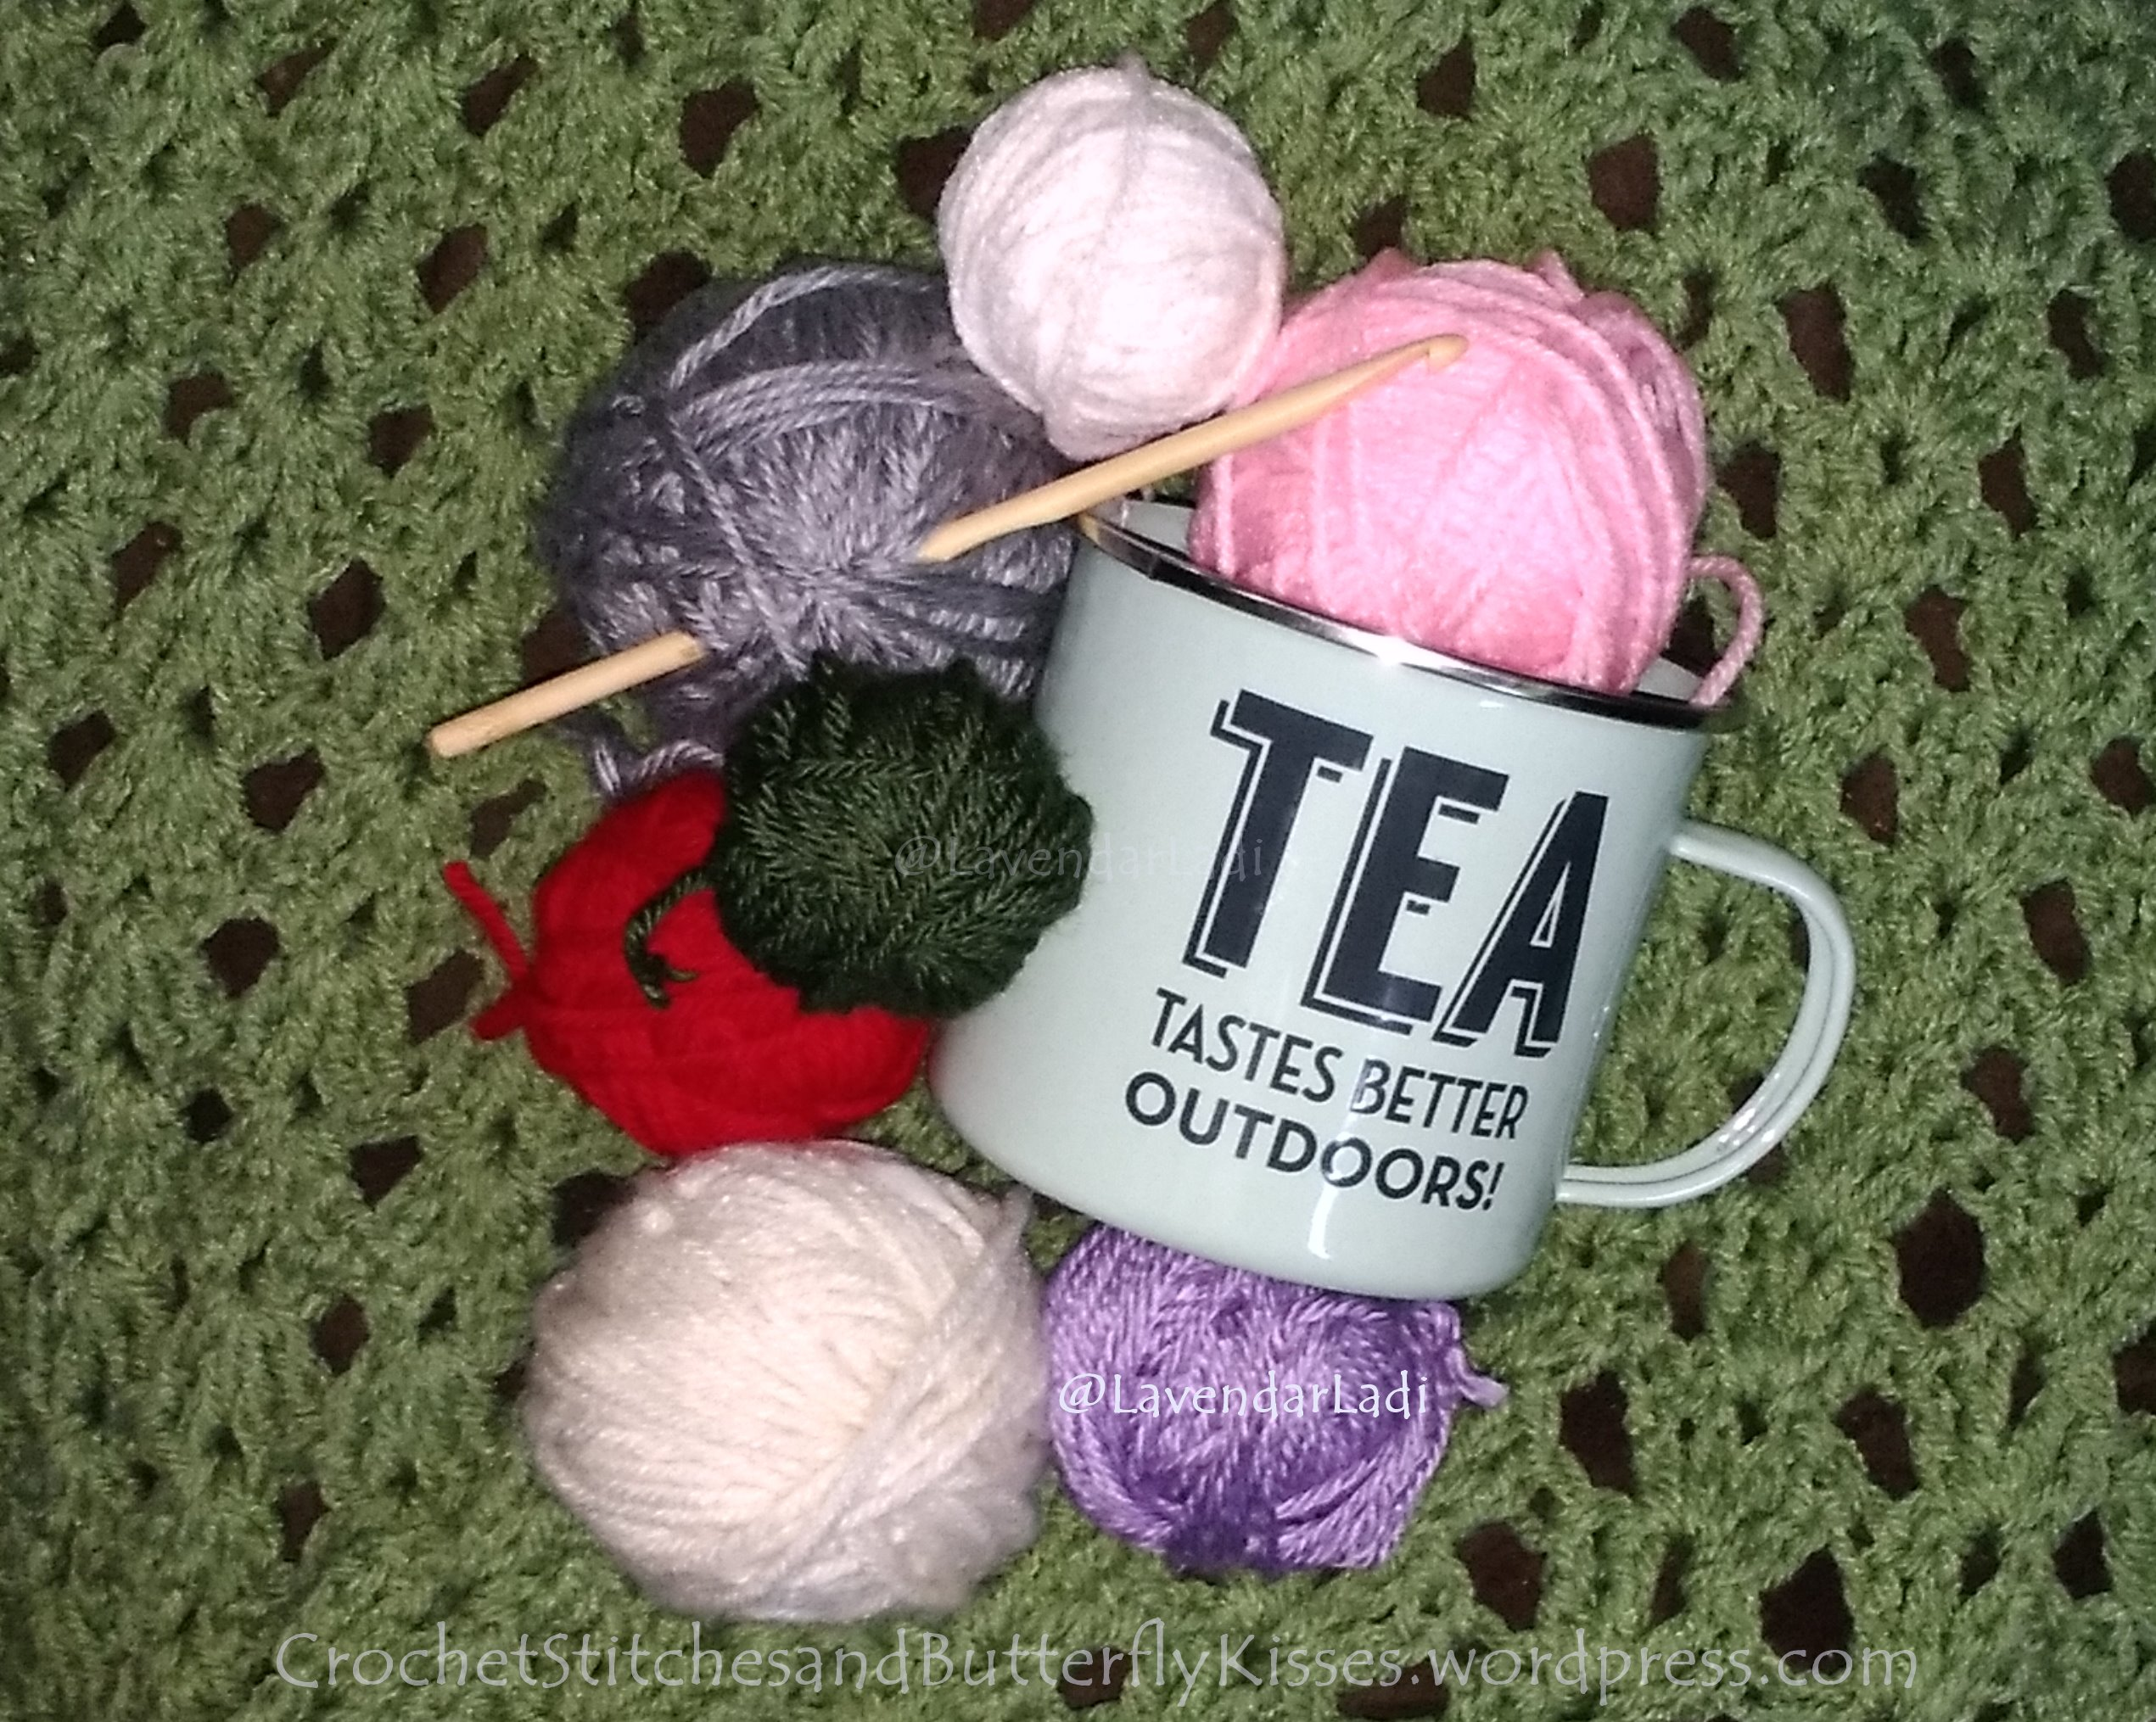 February's Yarn and Tea ~ More tea than yarn ;)